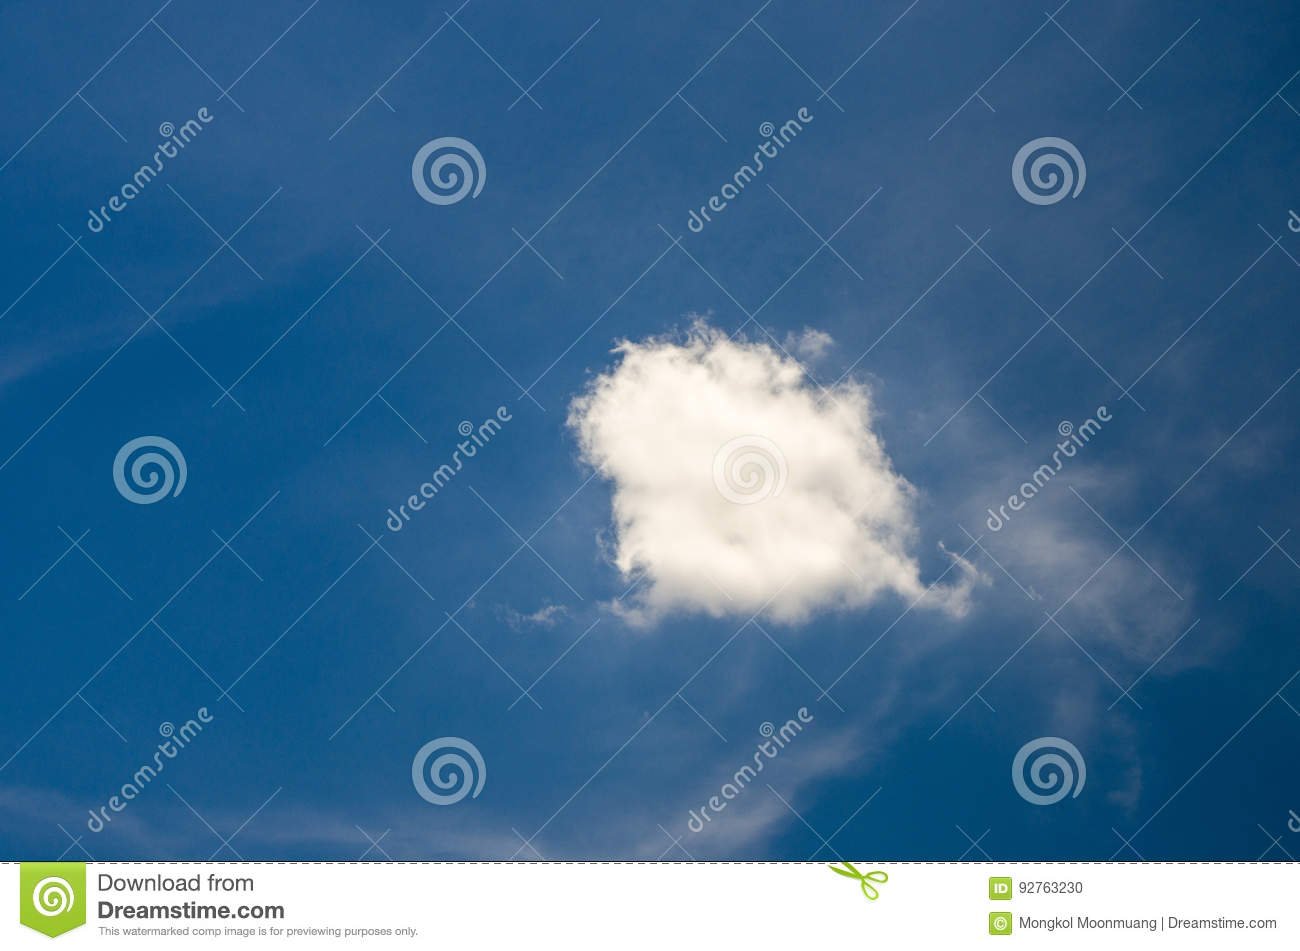 White clouds floating in the sky at daytime